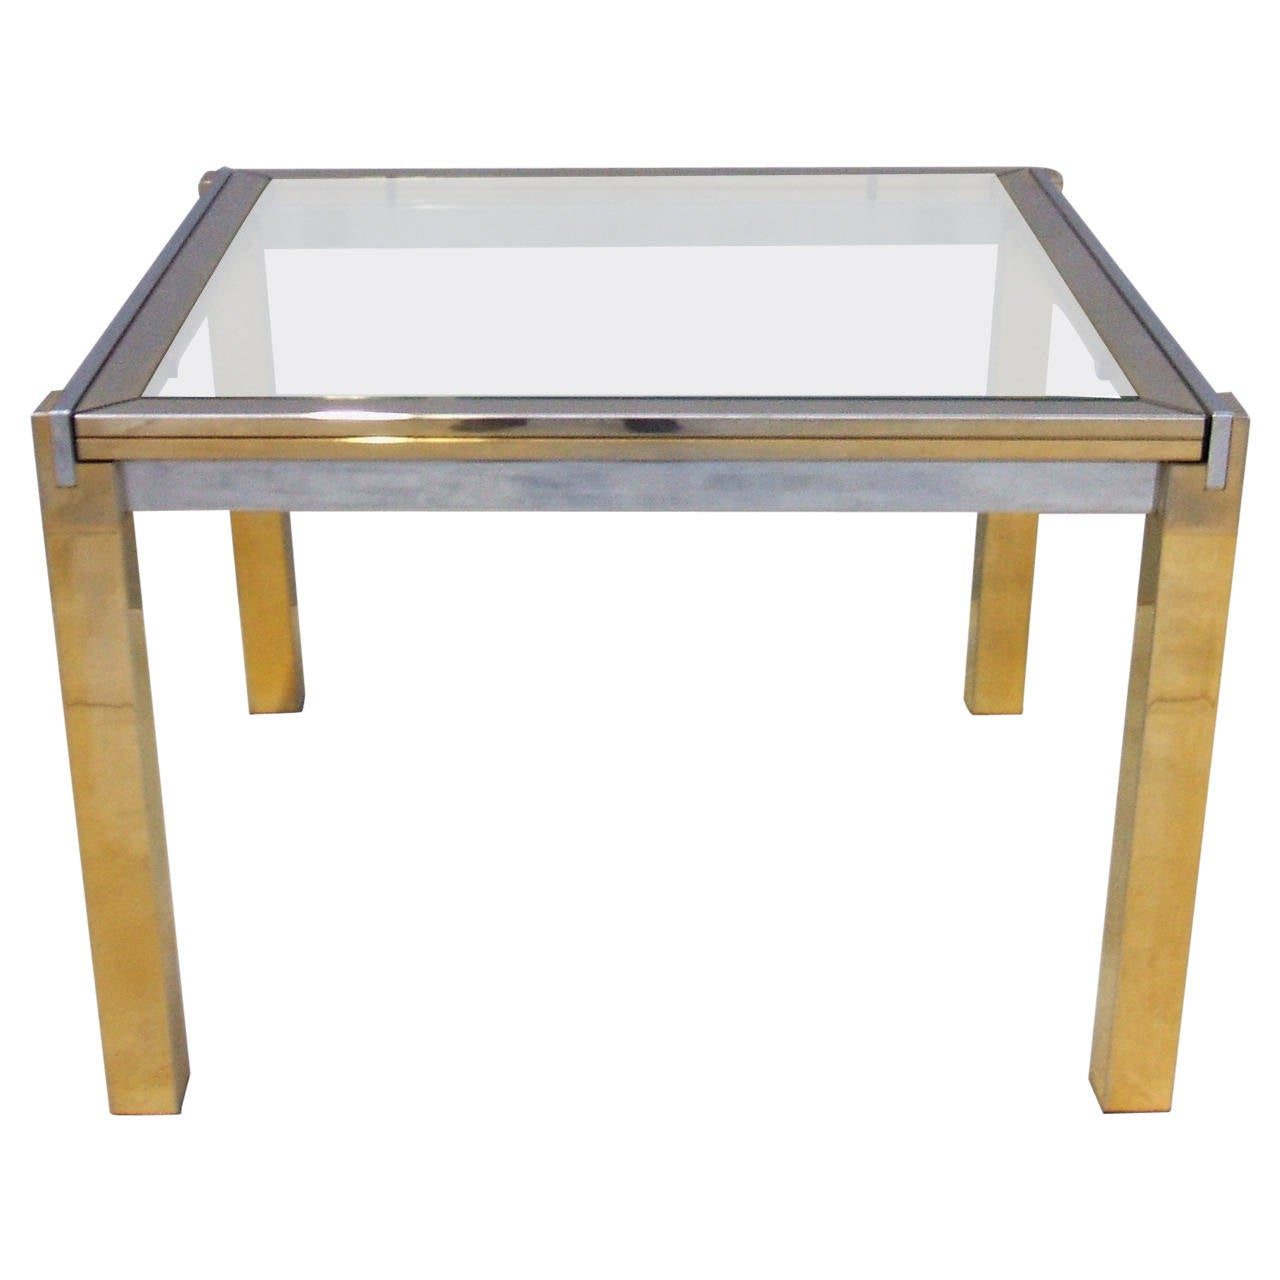 Extensible chrome and brass dining table at 1stdibs - Tables relevables extensibles ...